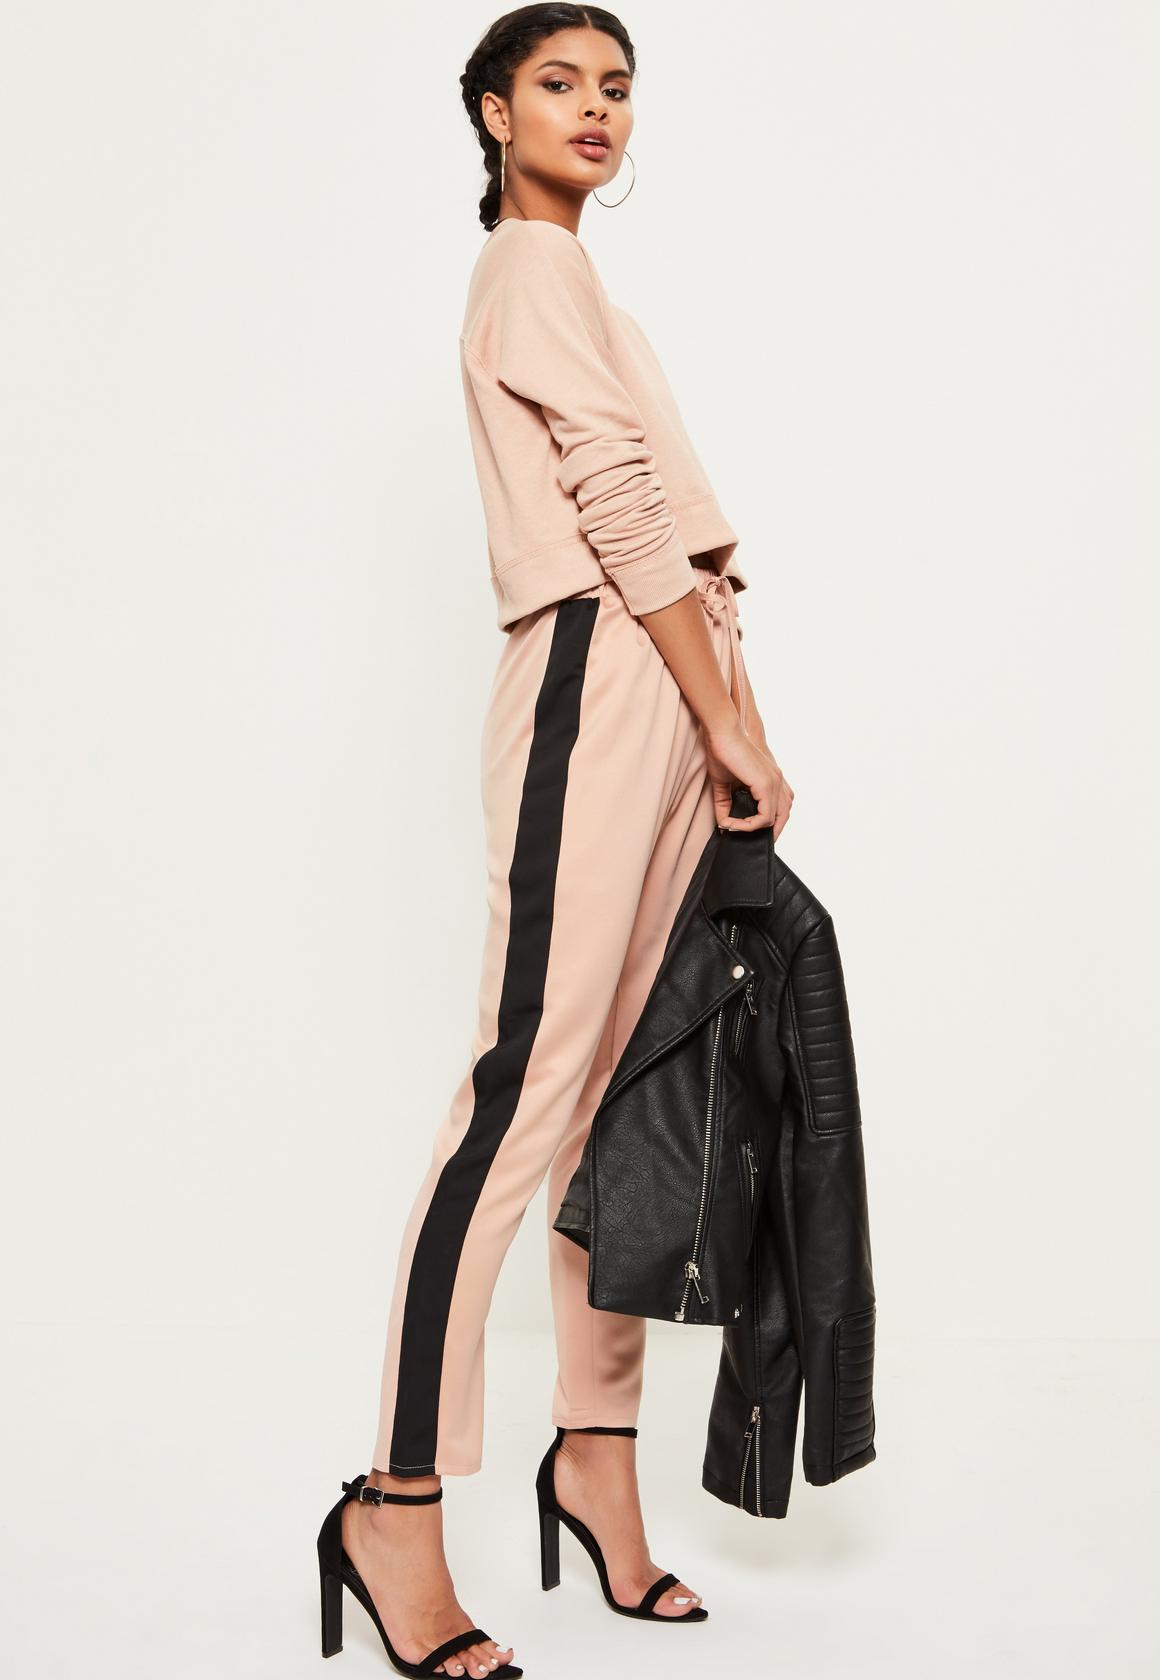 peach-joggers-pants-peach-sweater-sweatshirt-brun-braid-black-shoe-sandalh-black-jacket-moto-spring-summer-lunch-hoops-tracksuit.jpg